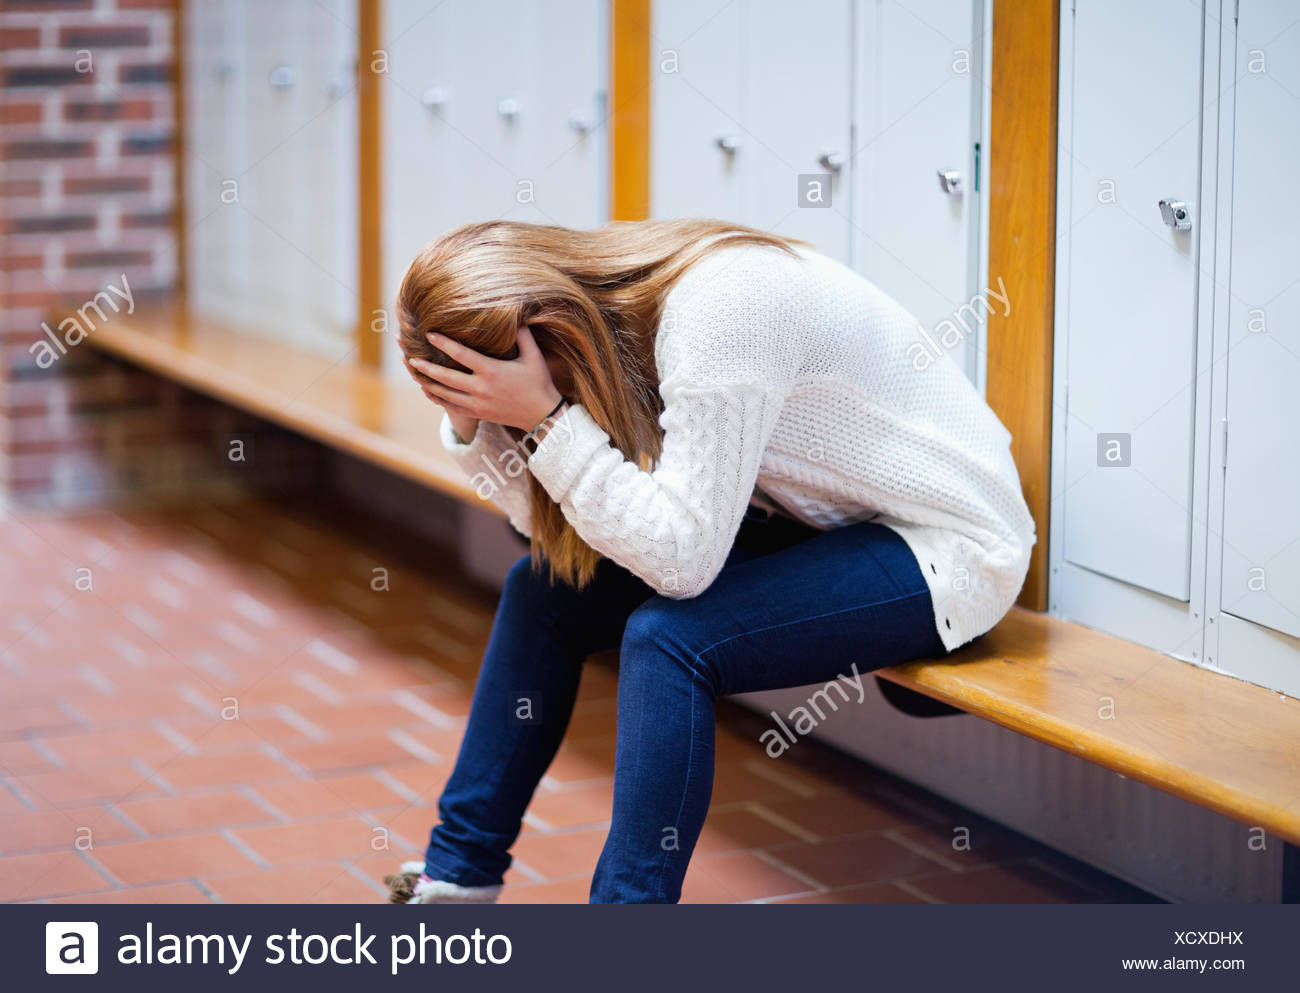 Depressed student sitting on a bench - Stock Image